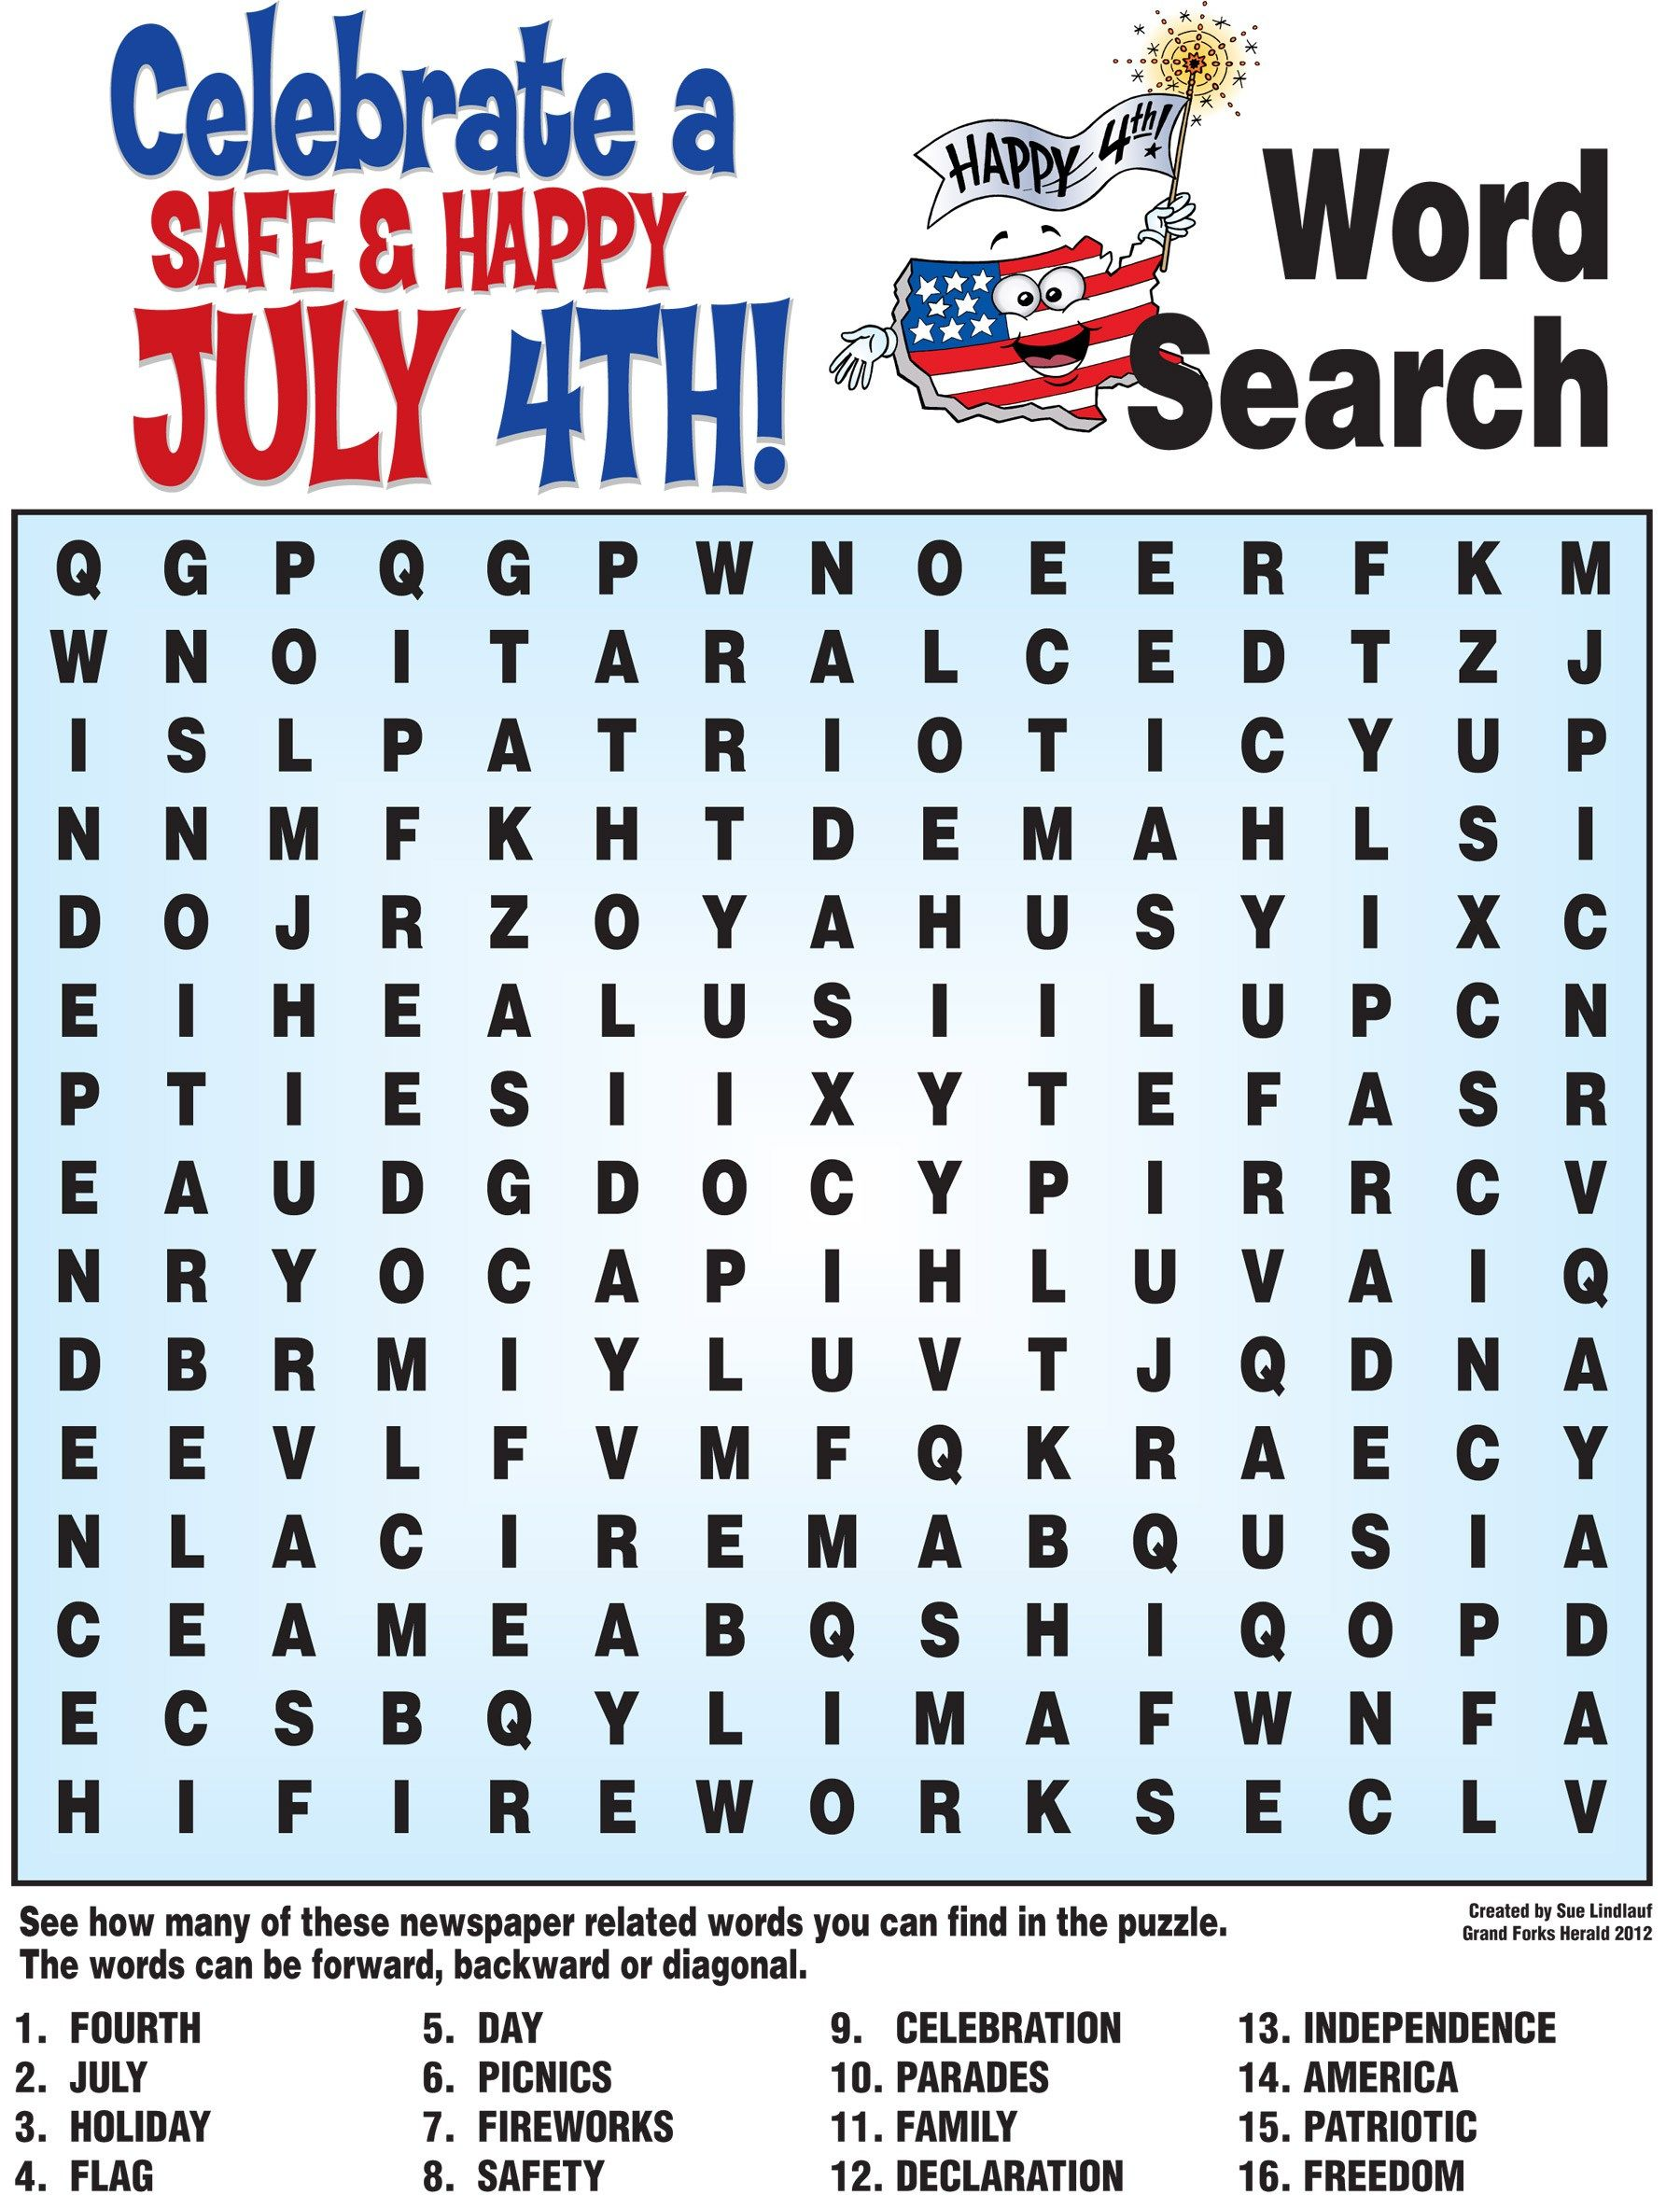 Here Are A Few Activities For You To Enjoy This 4th Of